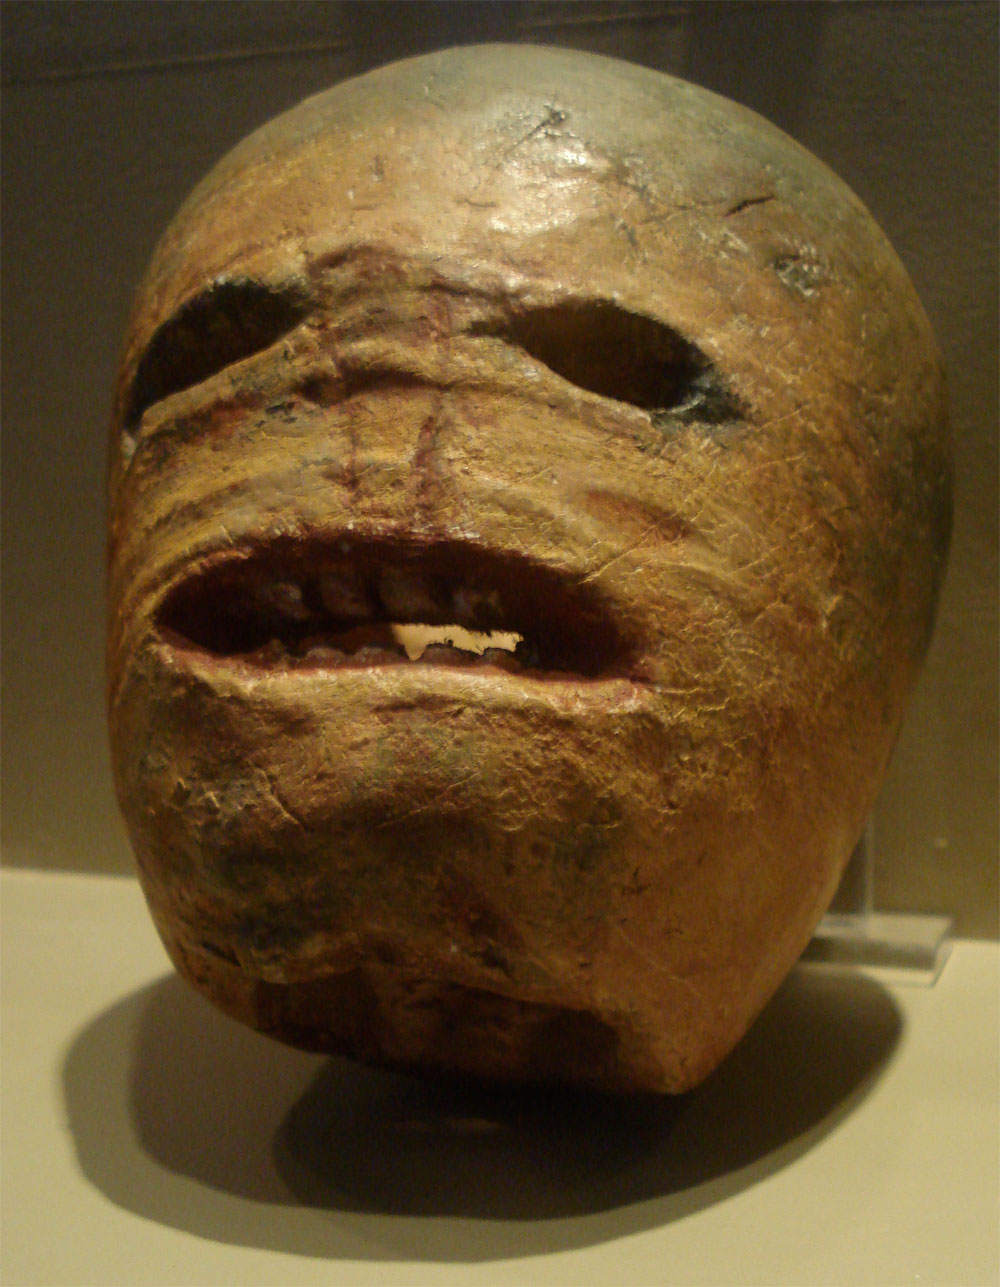 Traditional Irish Turnip Jack-o'-lantern